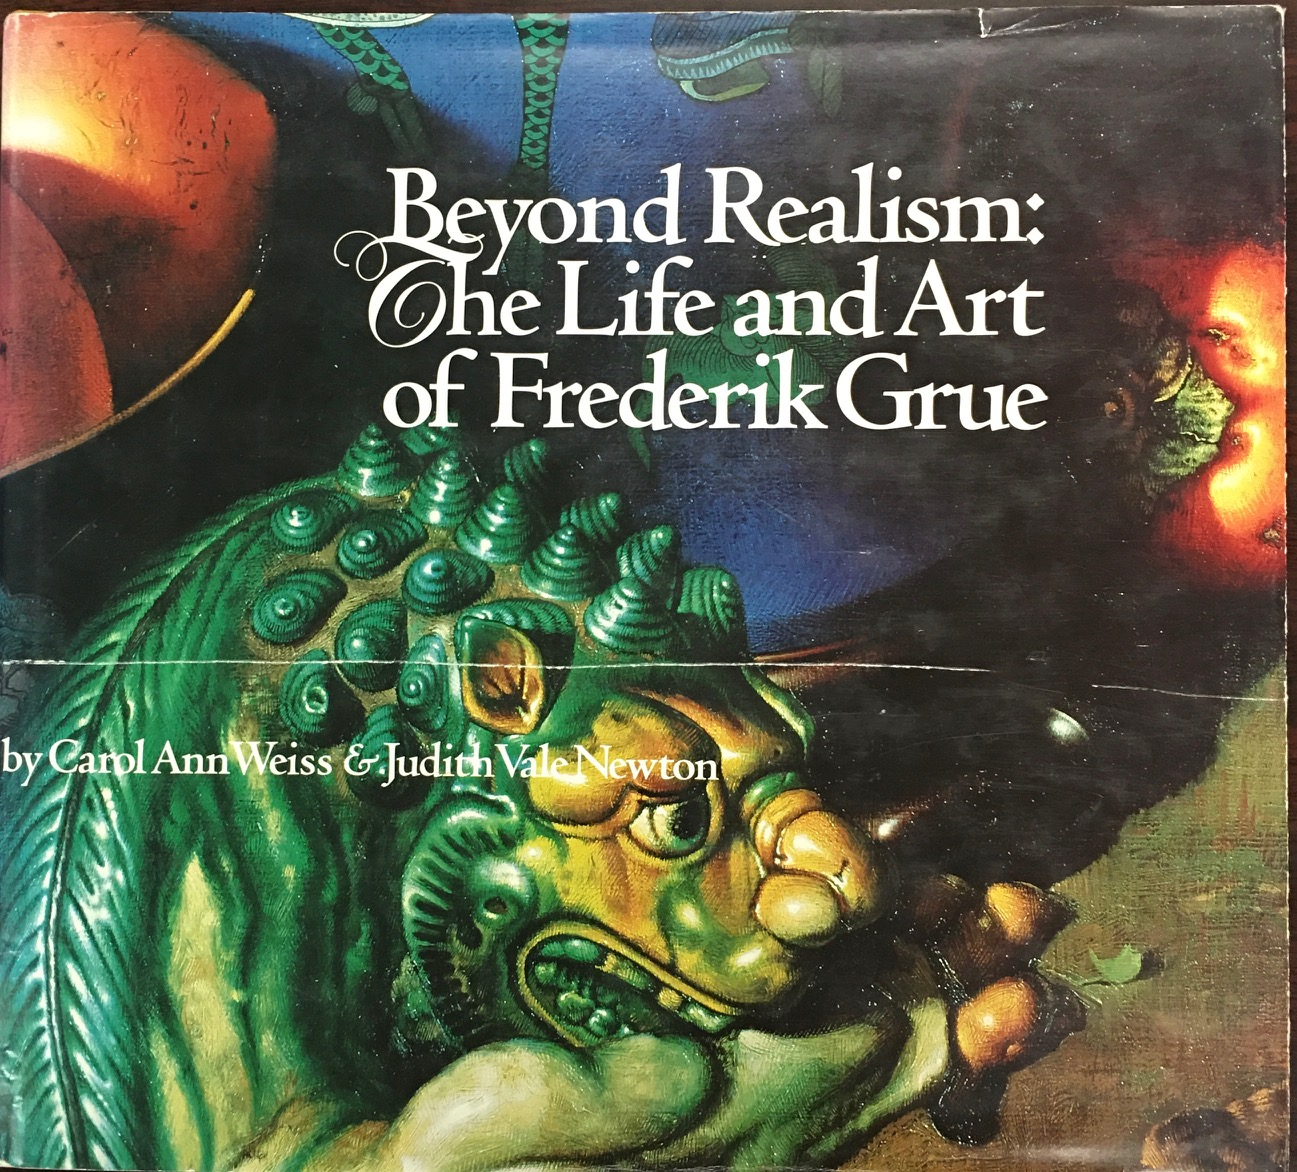 Image for Beyond Realism: The Life and Art of Frederik Grue